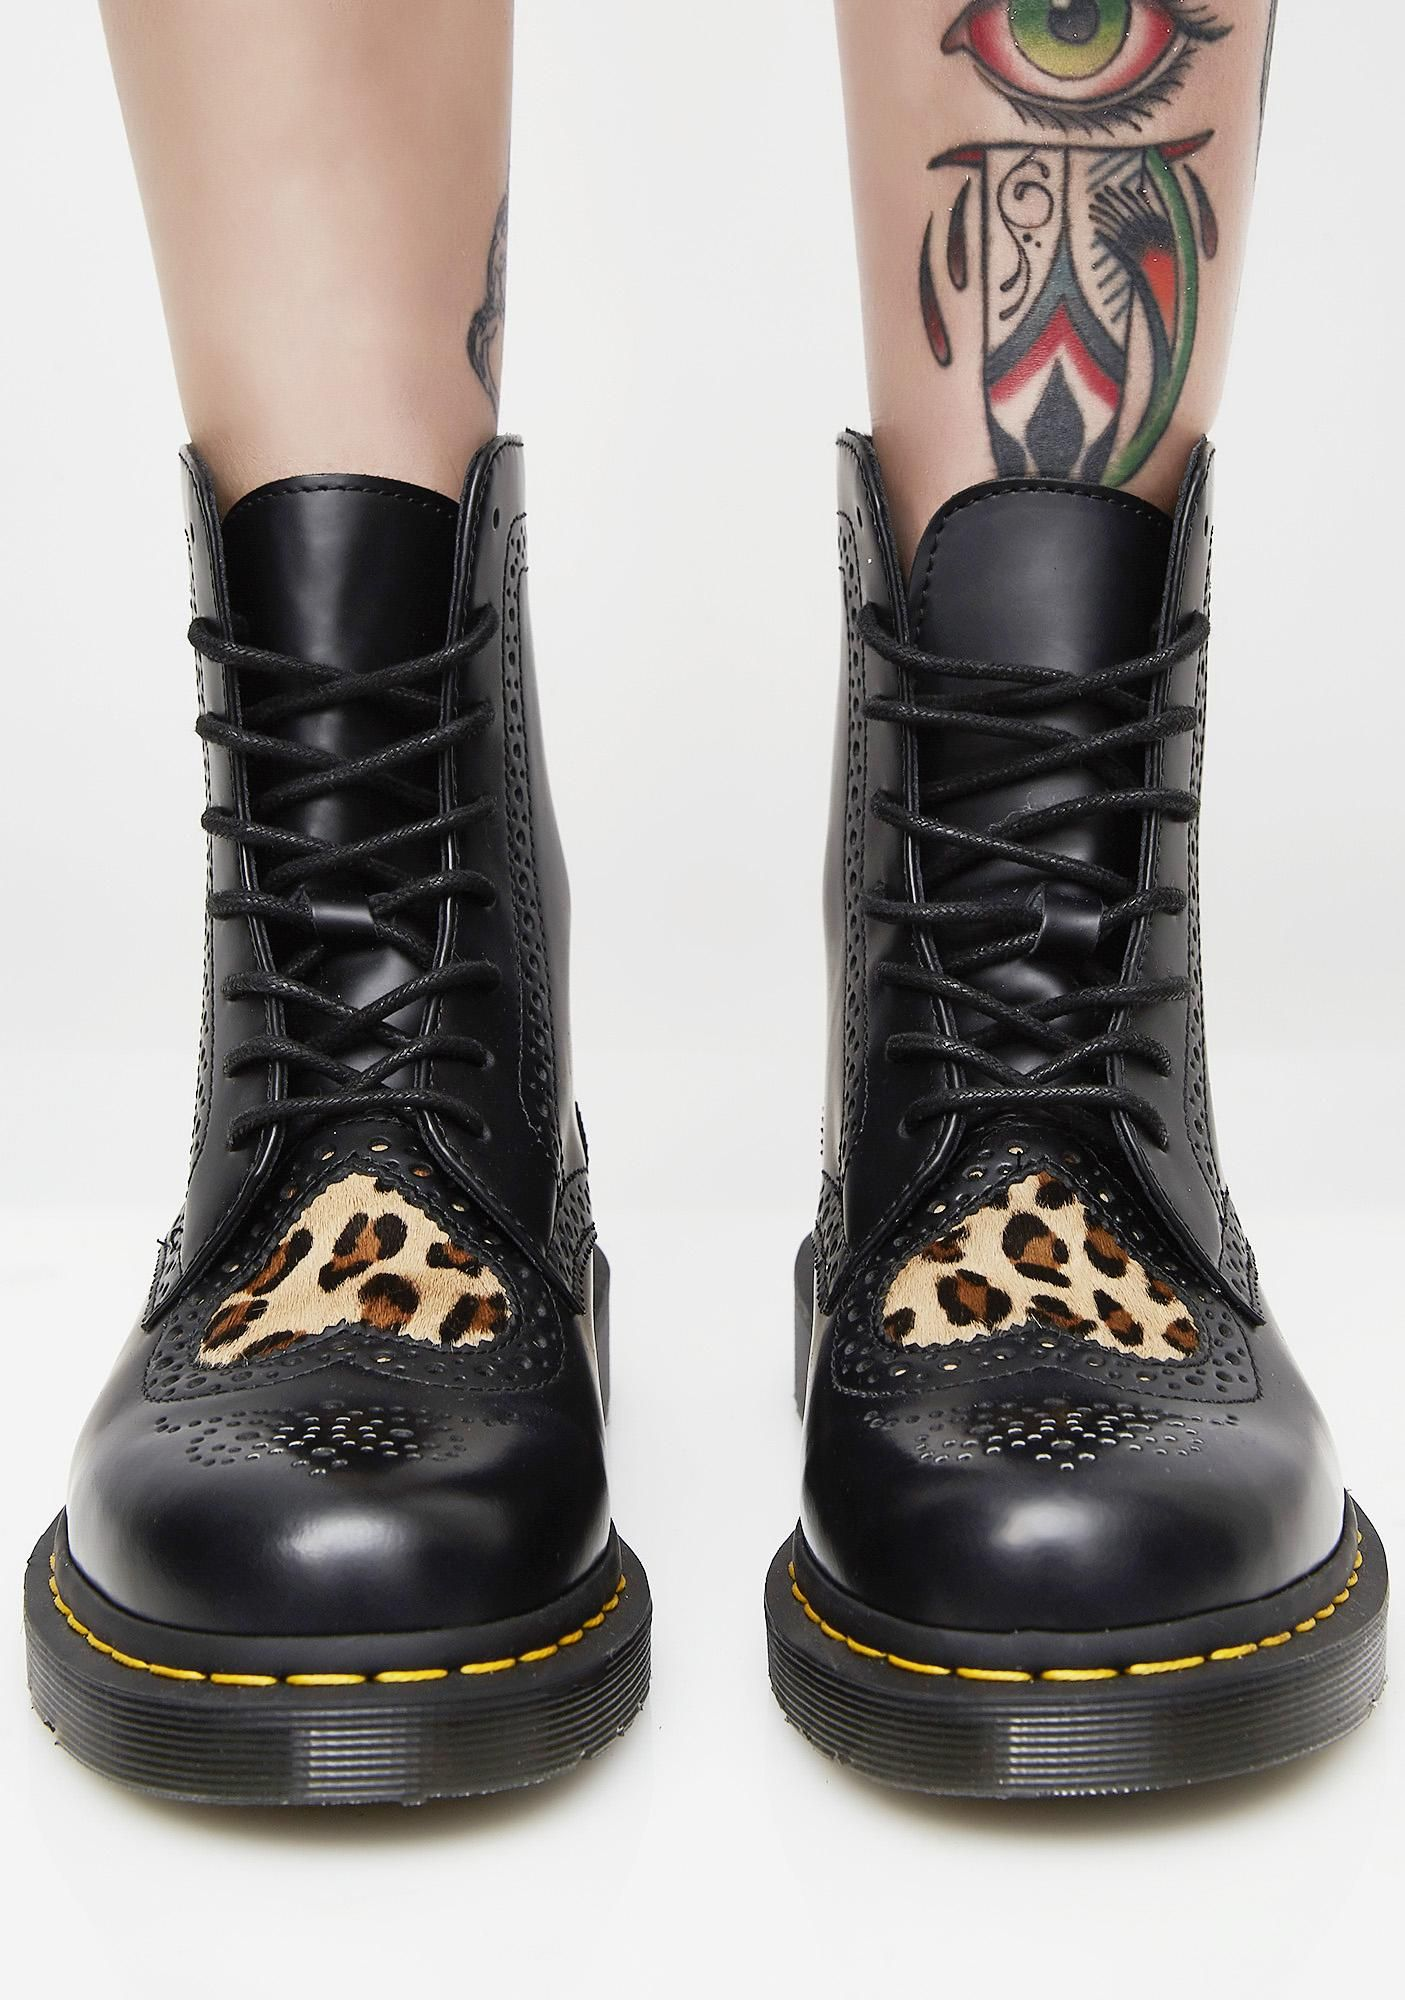 2921a53581e5 Dr. Martens Bentley II Heart Boots cuz they luv to luv ya. These black  boots have leopard print panels on the front